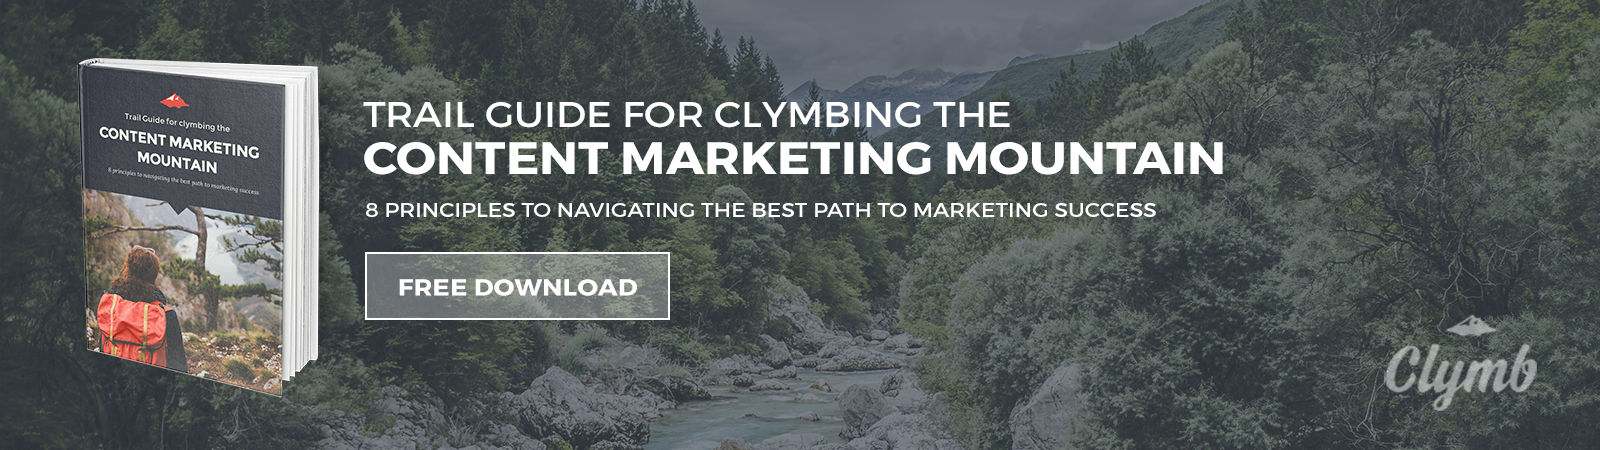 trail guide for climbing the content marketing mountain